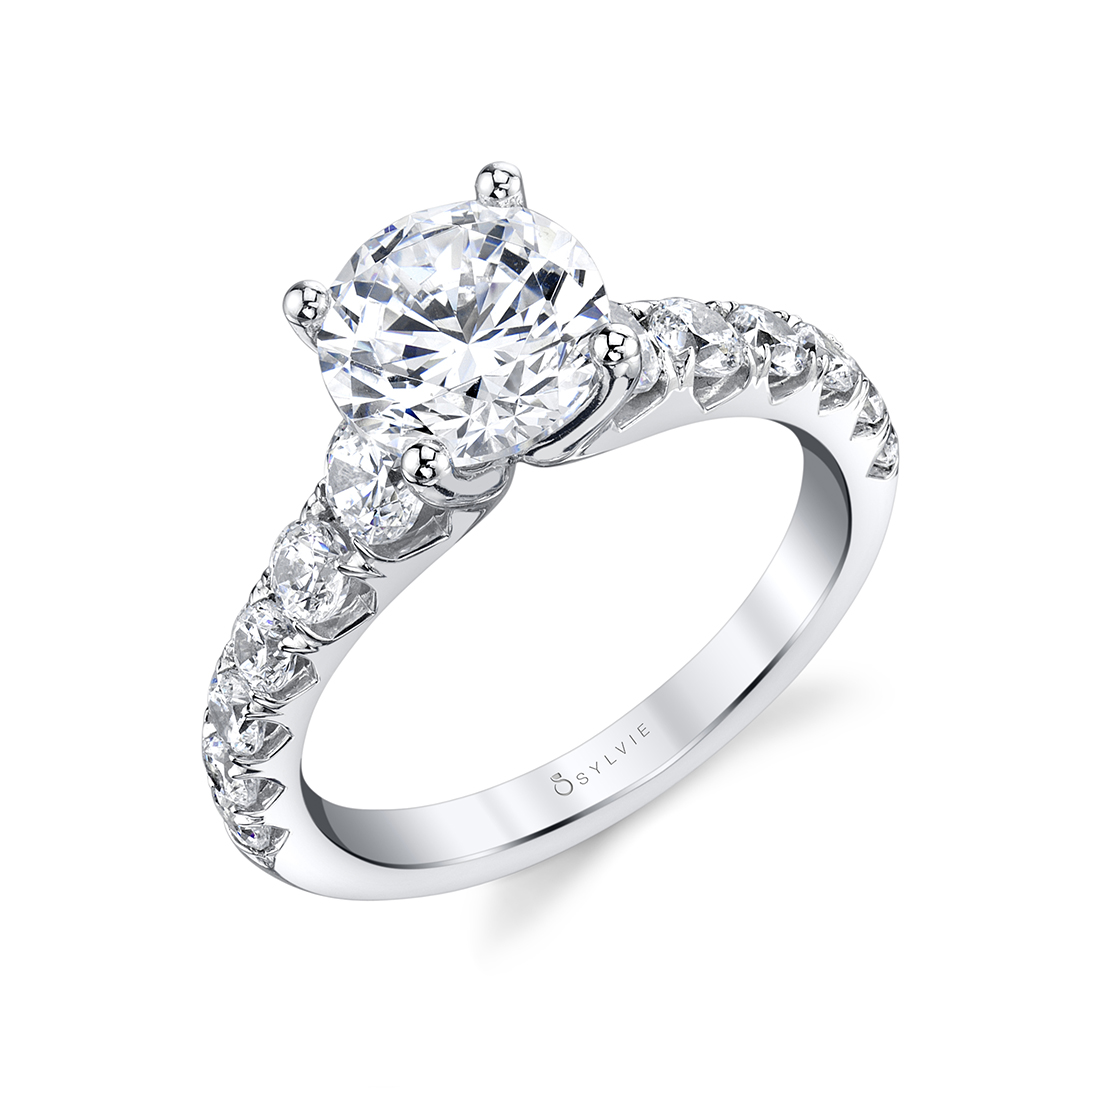 Profile Image of Wide Band Engagement Ring in White Gold - Andrea